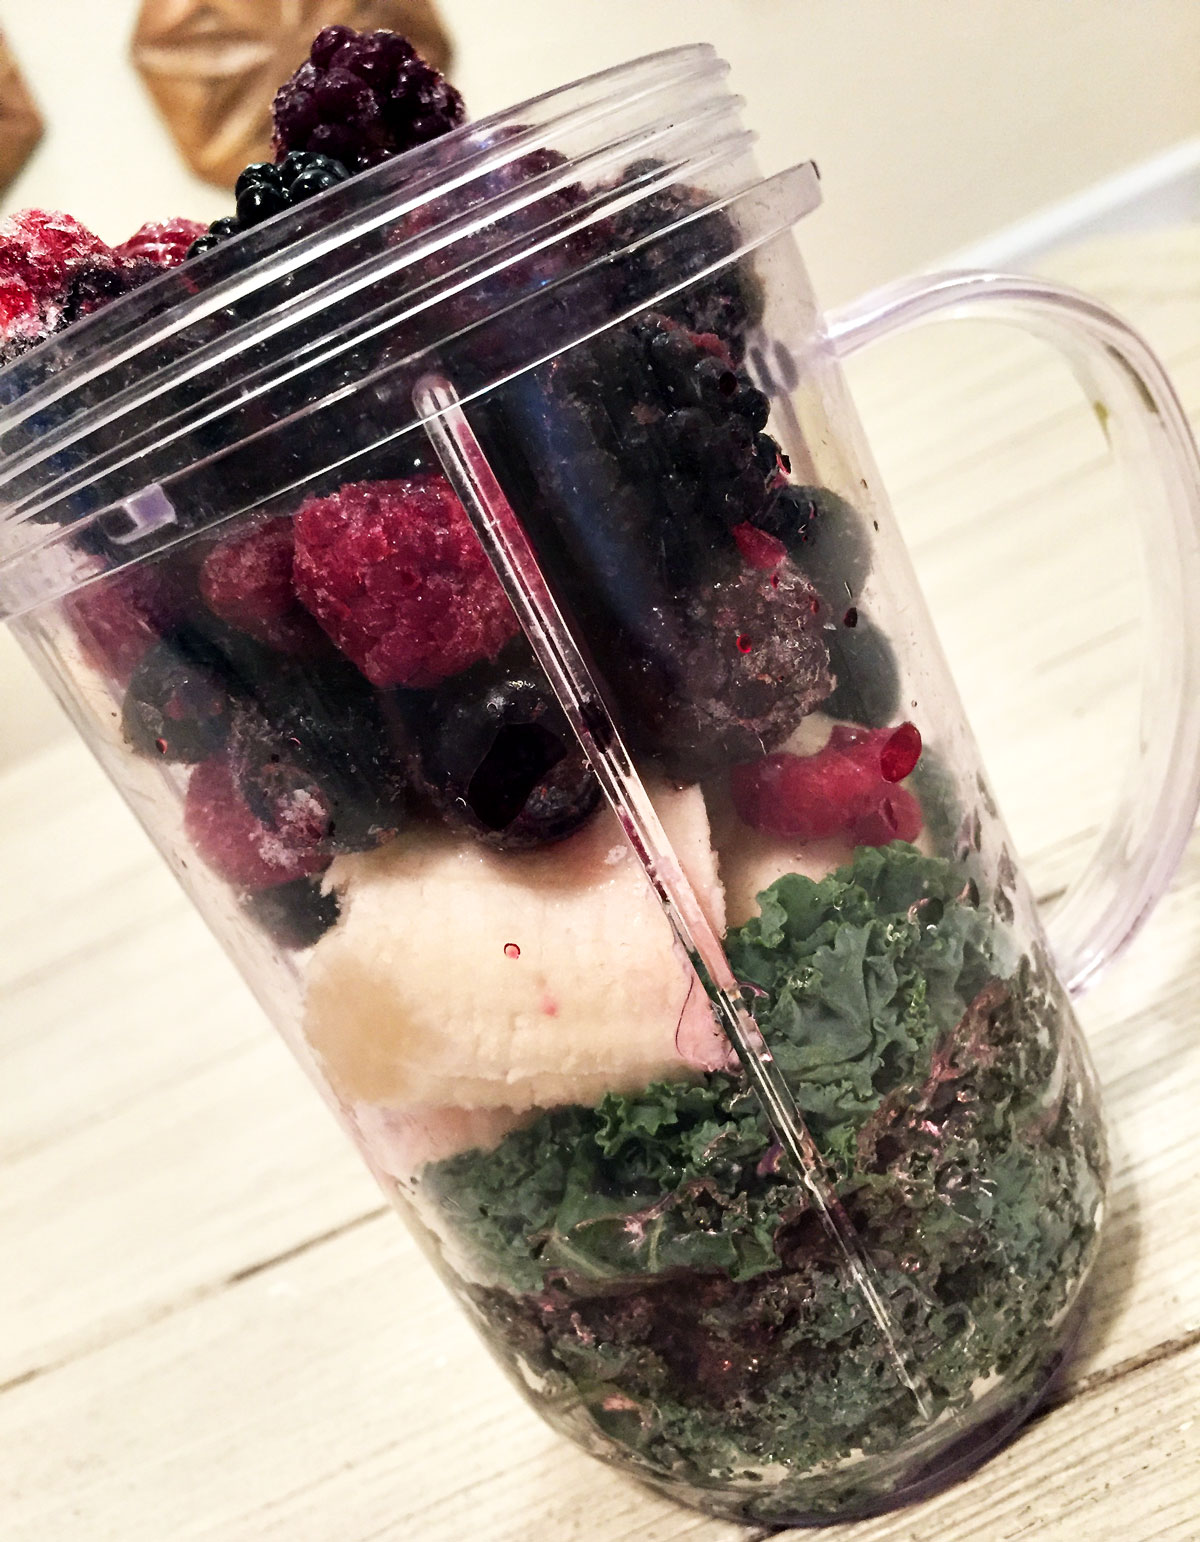 Five-Healthy-Foods-That-Are-Always-In-My-Kitchen-Berry-Kale-Smoothie-By-Bumble-and-Bustle